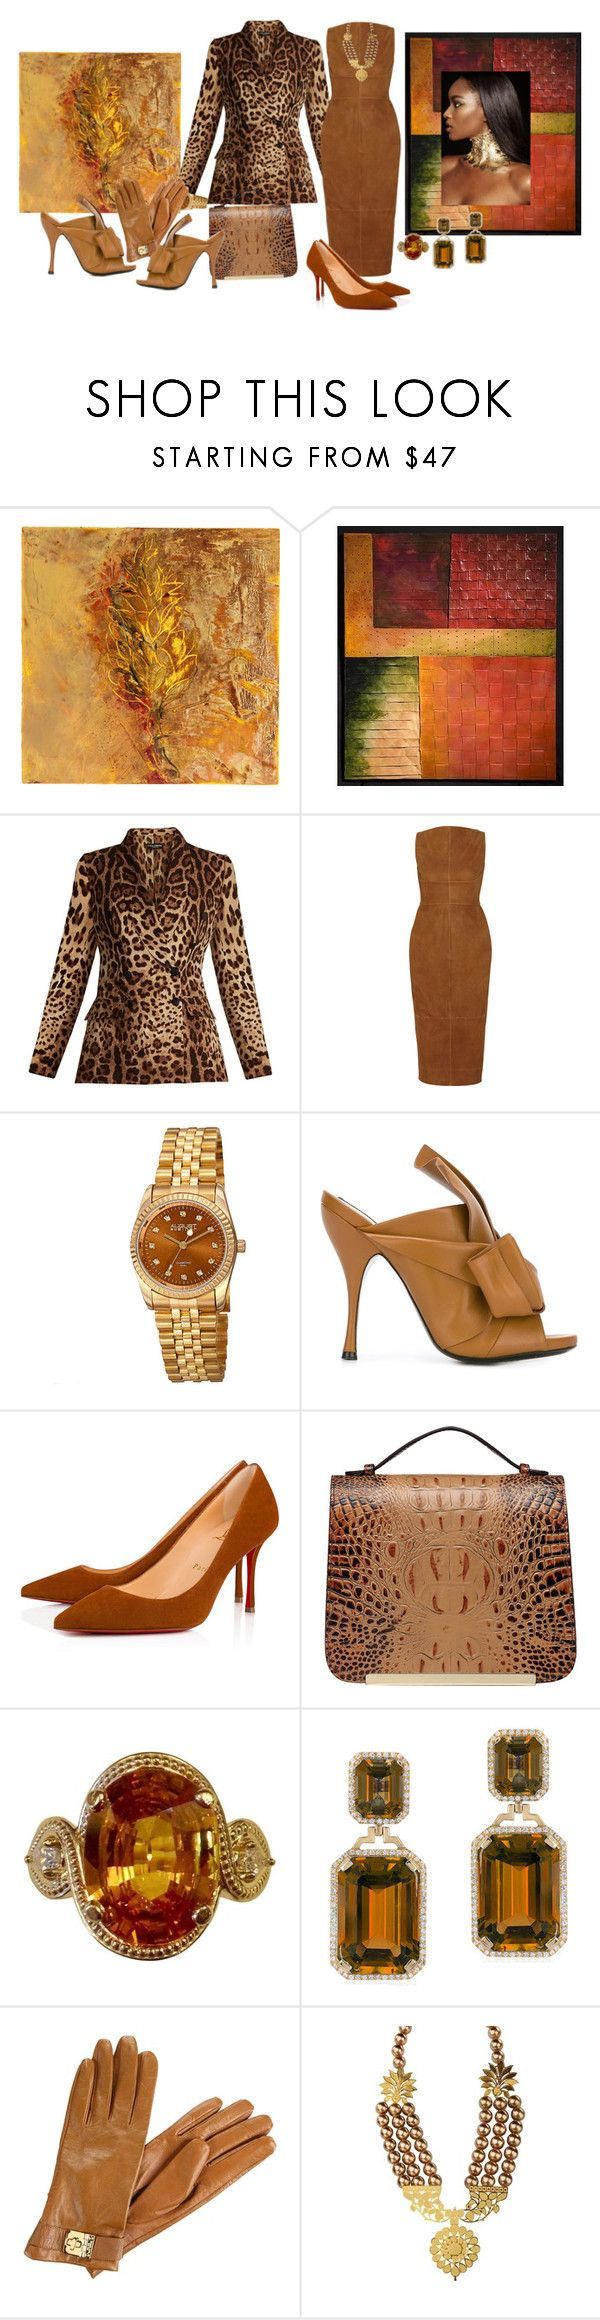 """""""Art Lover on the job at all times"""" by blujay1126 ❤ liked on Polyvore featuring Sara Post, David Paul Bacharach, Dolce&Gabbana, Rick Owens, August Steiner, Christian Louboutin, Vicenzo Leather, Goshwara and MICHAEL Michael Kors"""